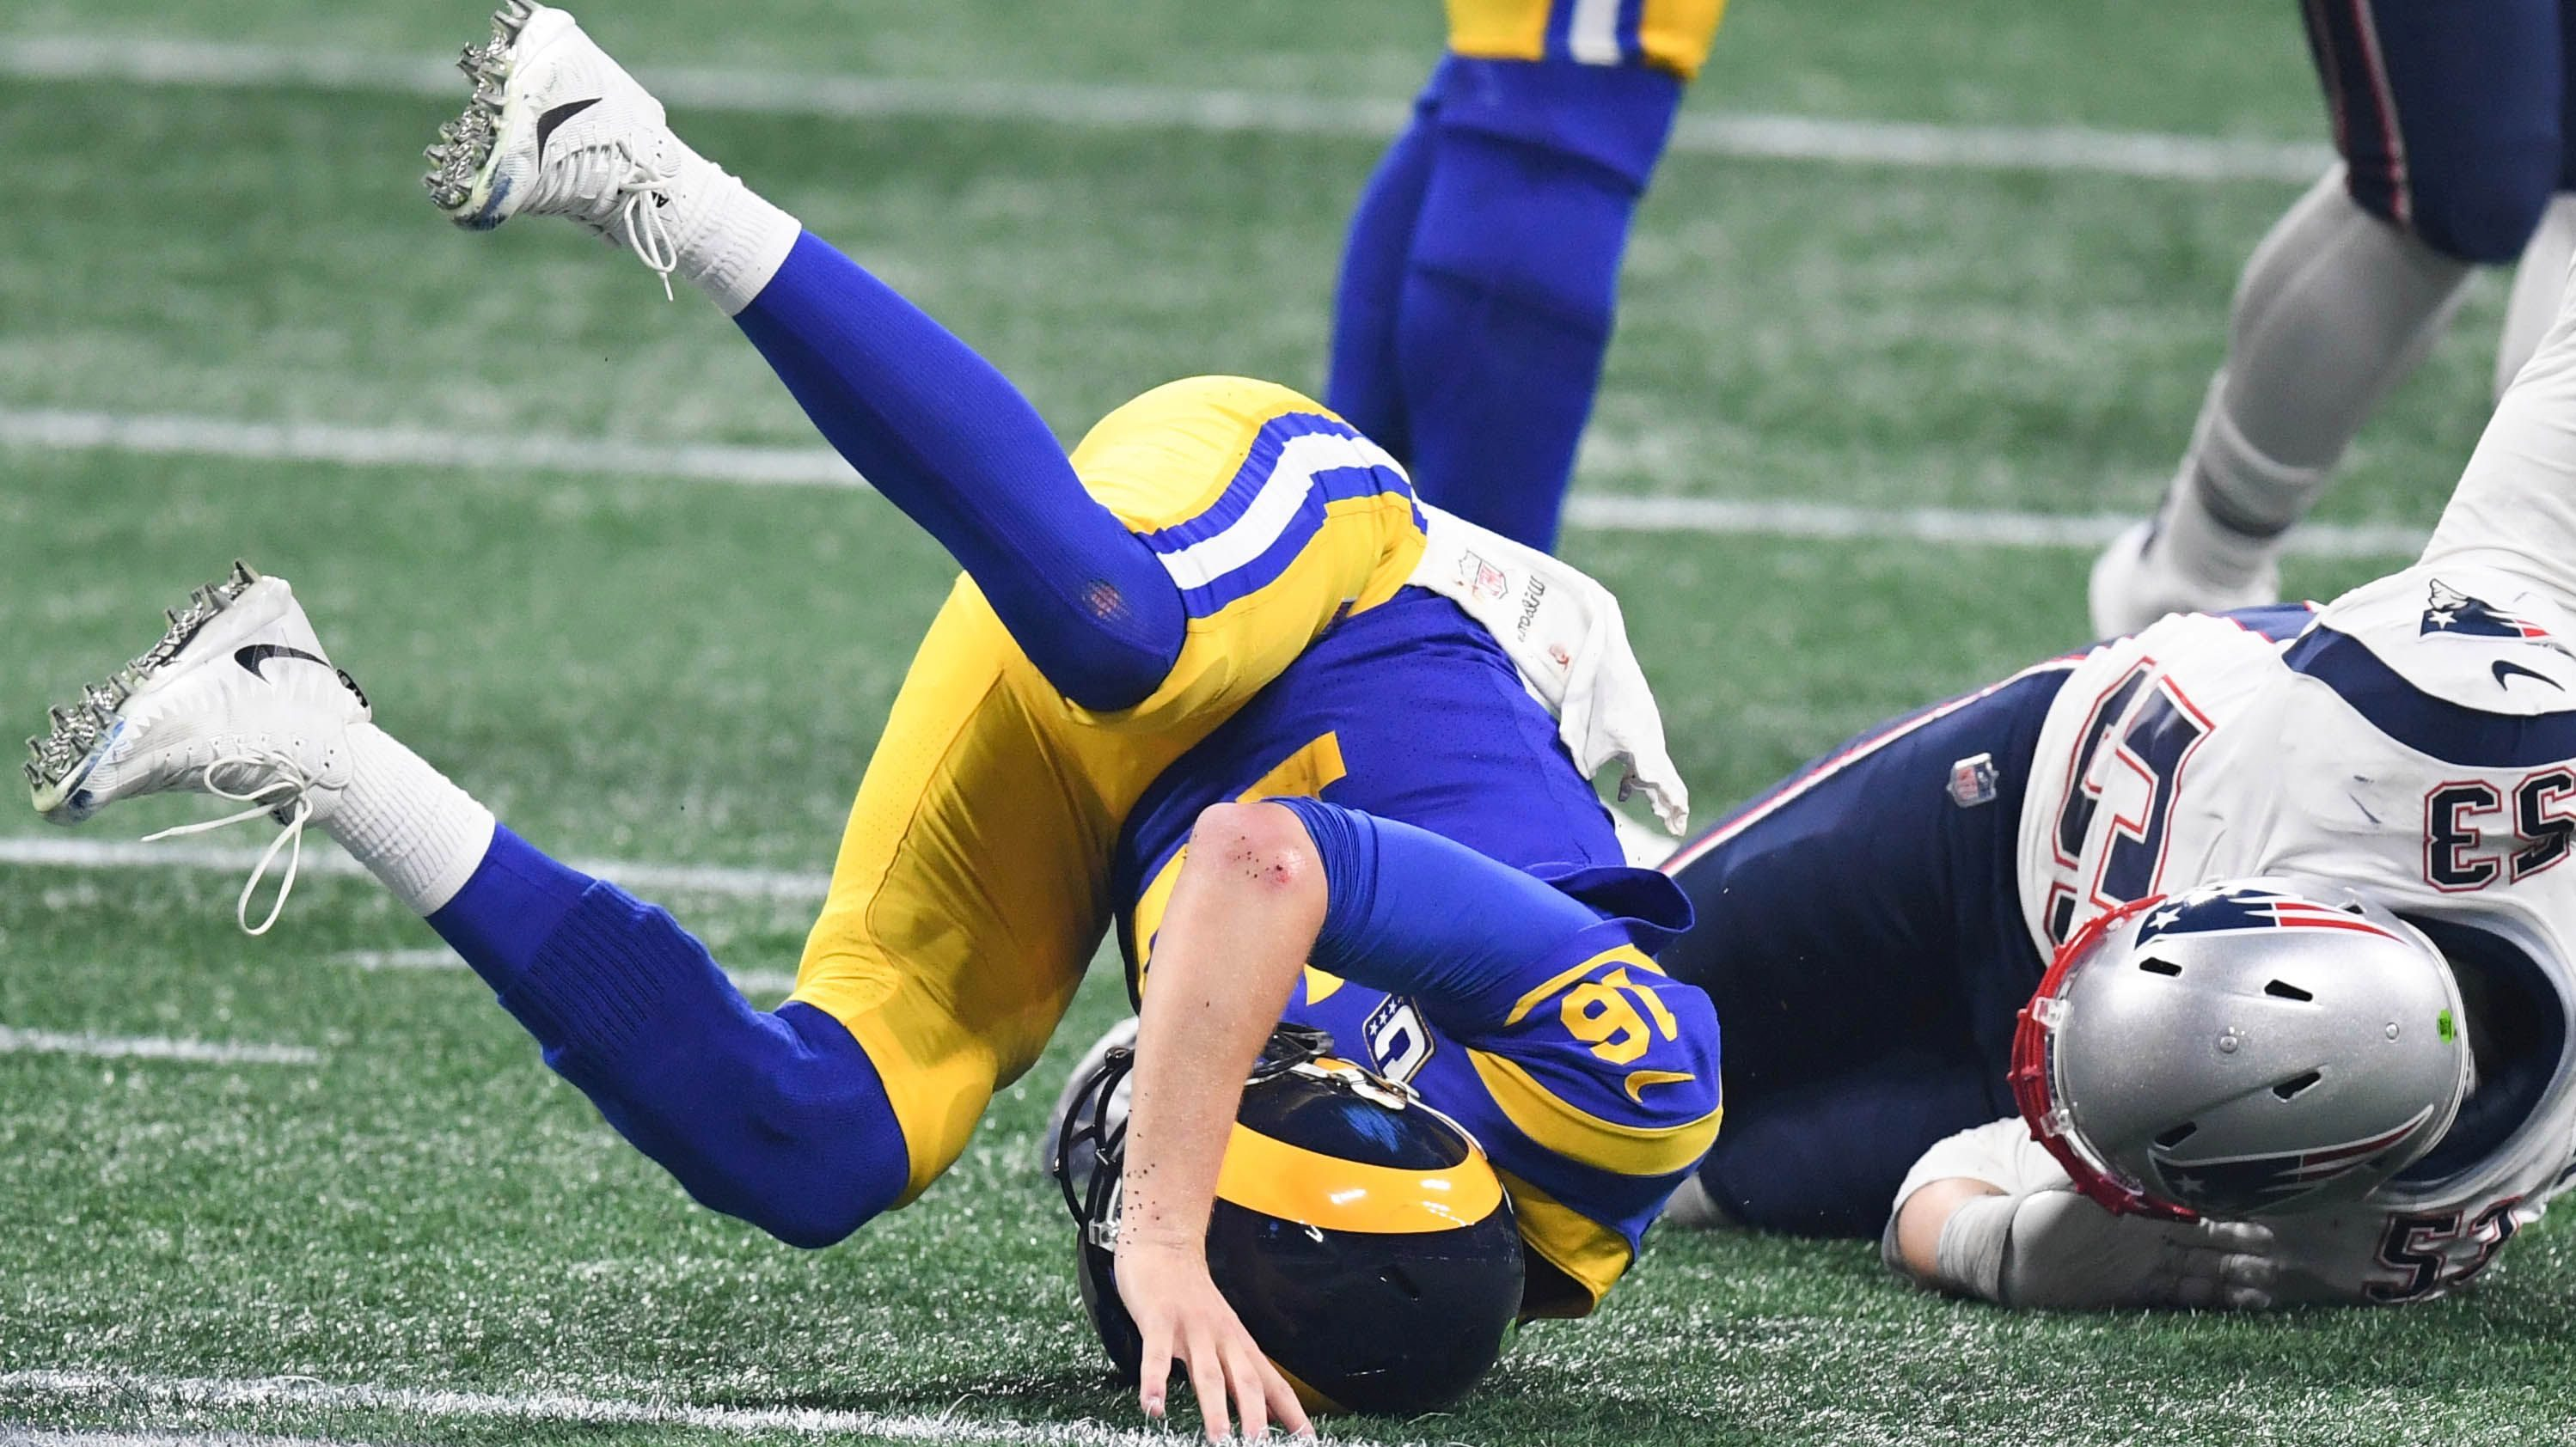 Los Angeles Rams quarterback Jared Goff (16) rolls over after a tackle by New England Patriots middle linebacker Kyle Van Noy (53) during the fourth quarter in Super Bowl LIII at Mercedes-Benz Stadium.